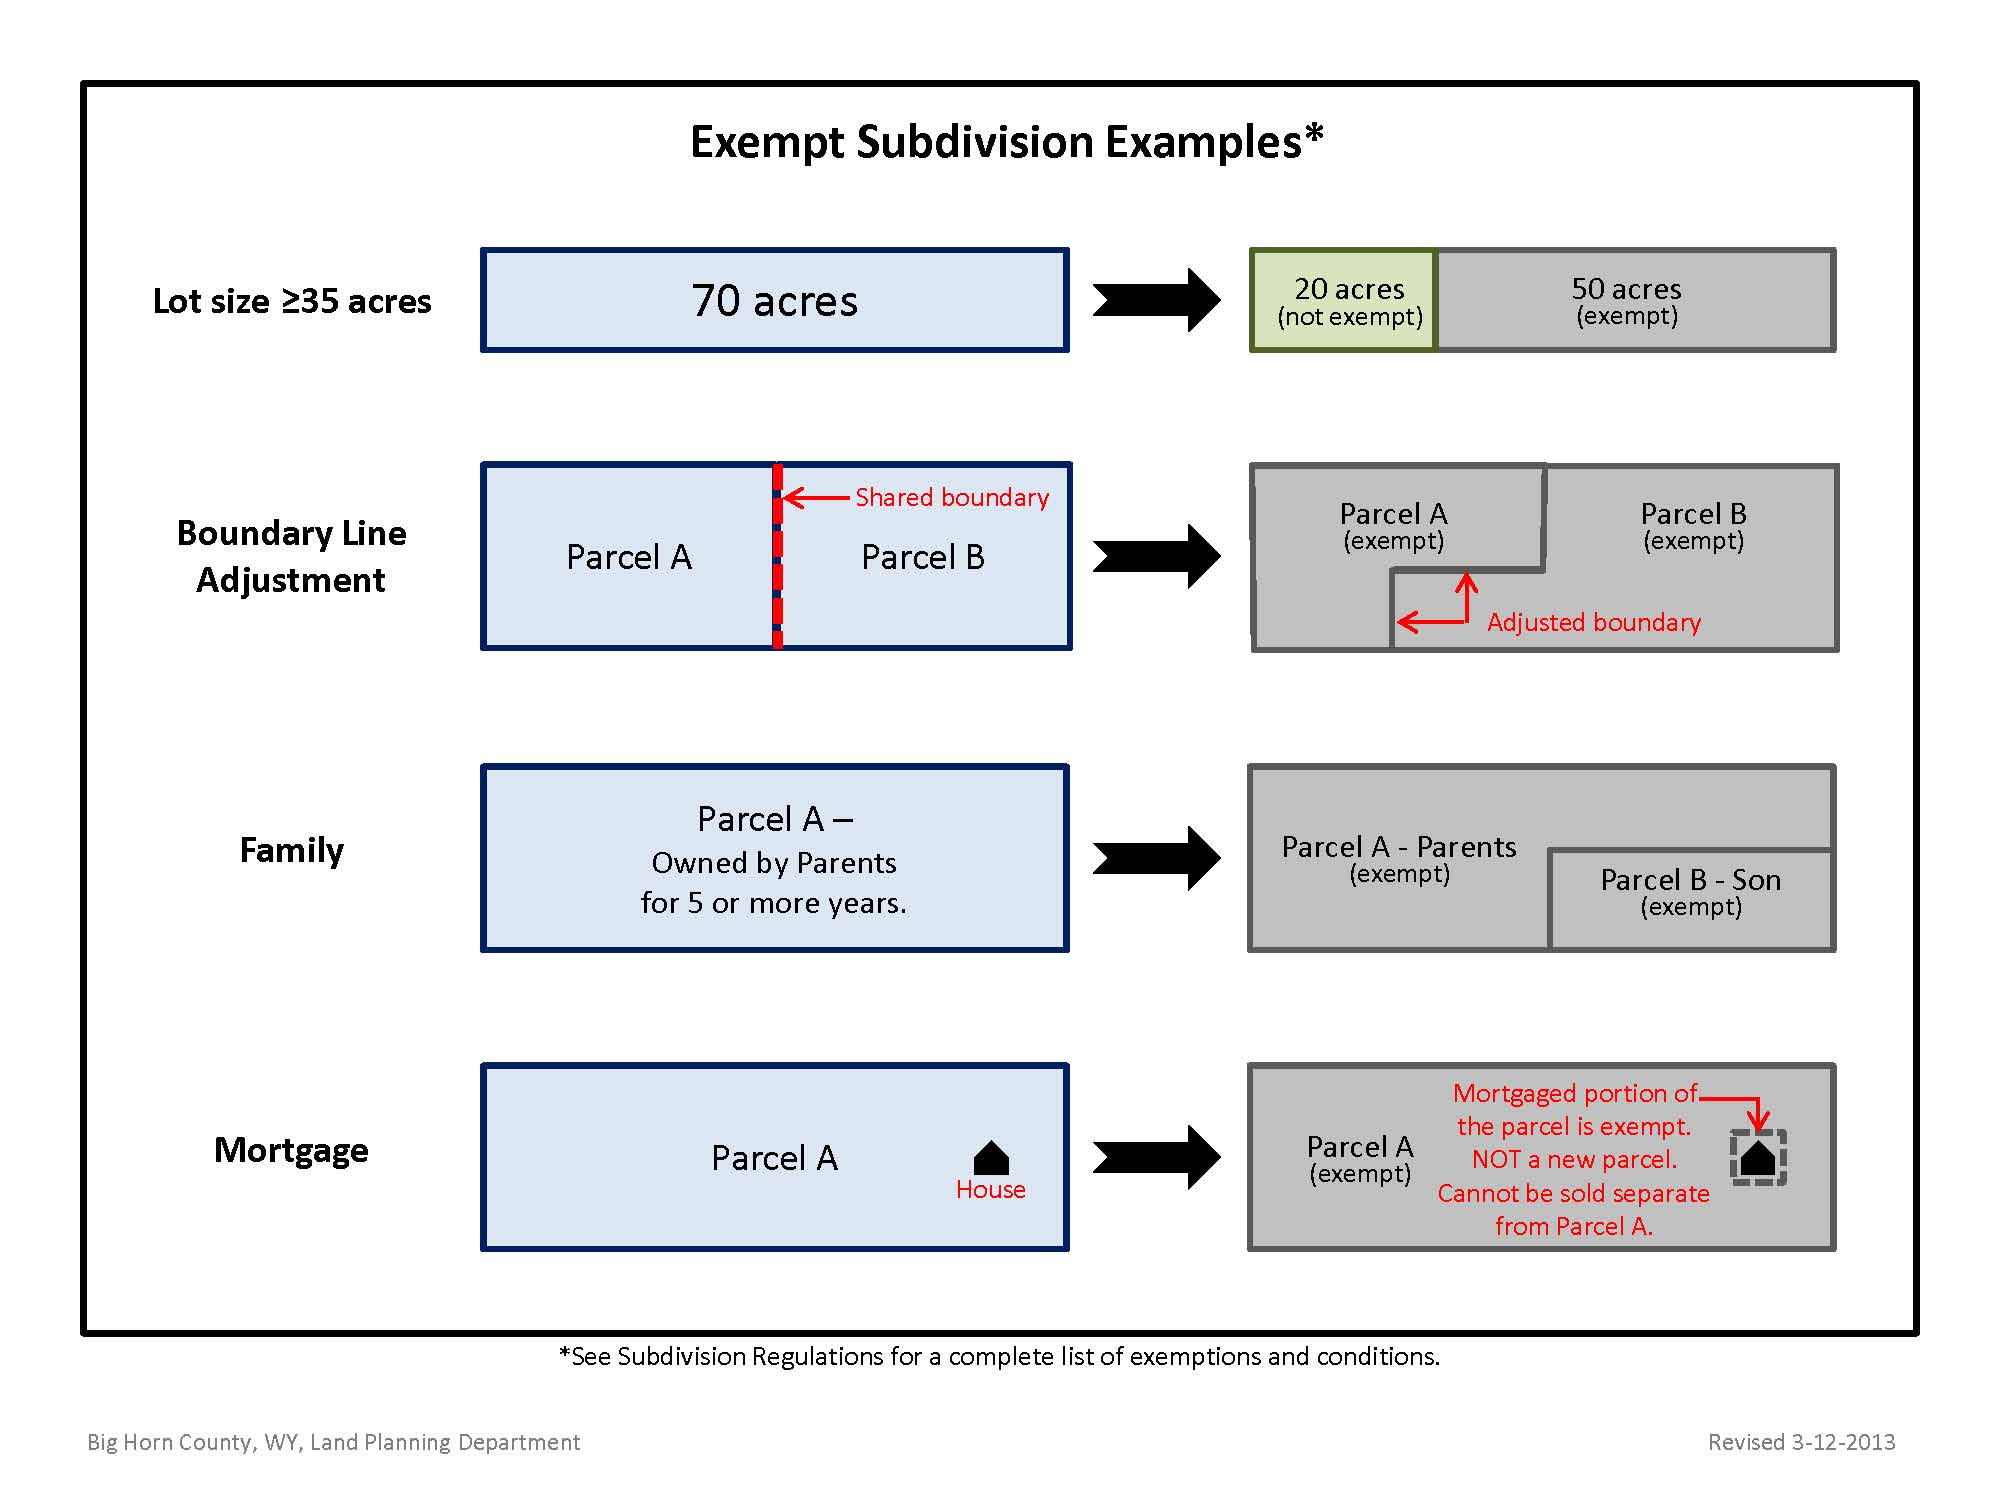 ExemptSubdiv Example Graphic